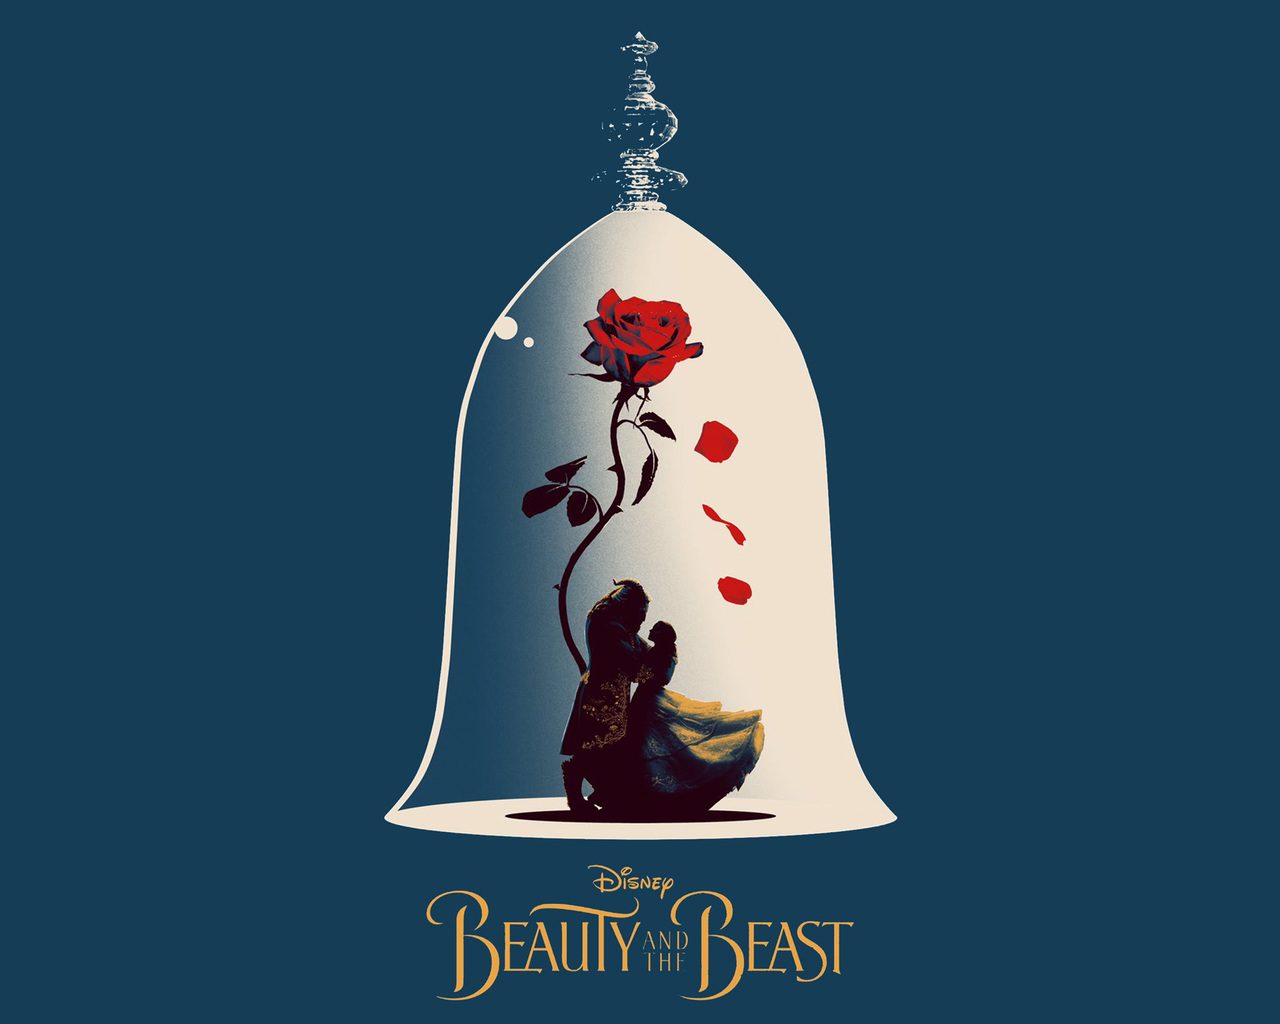 beauty-and-the-beast-poster-artwork-ap.jpg